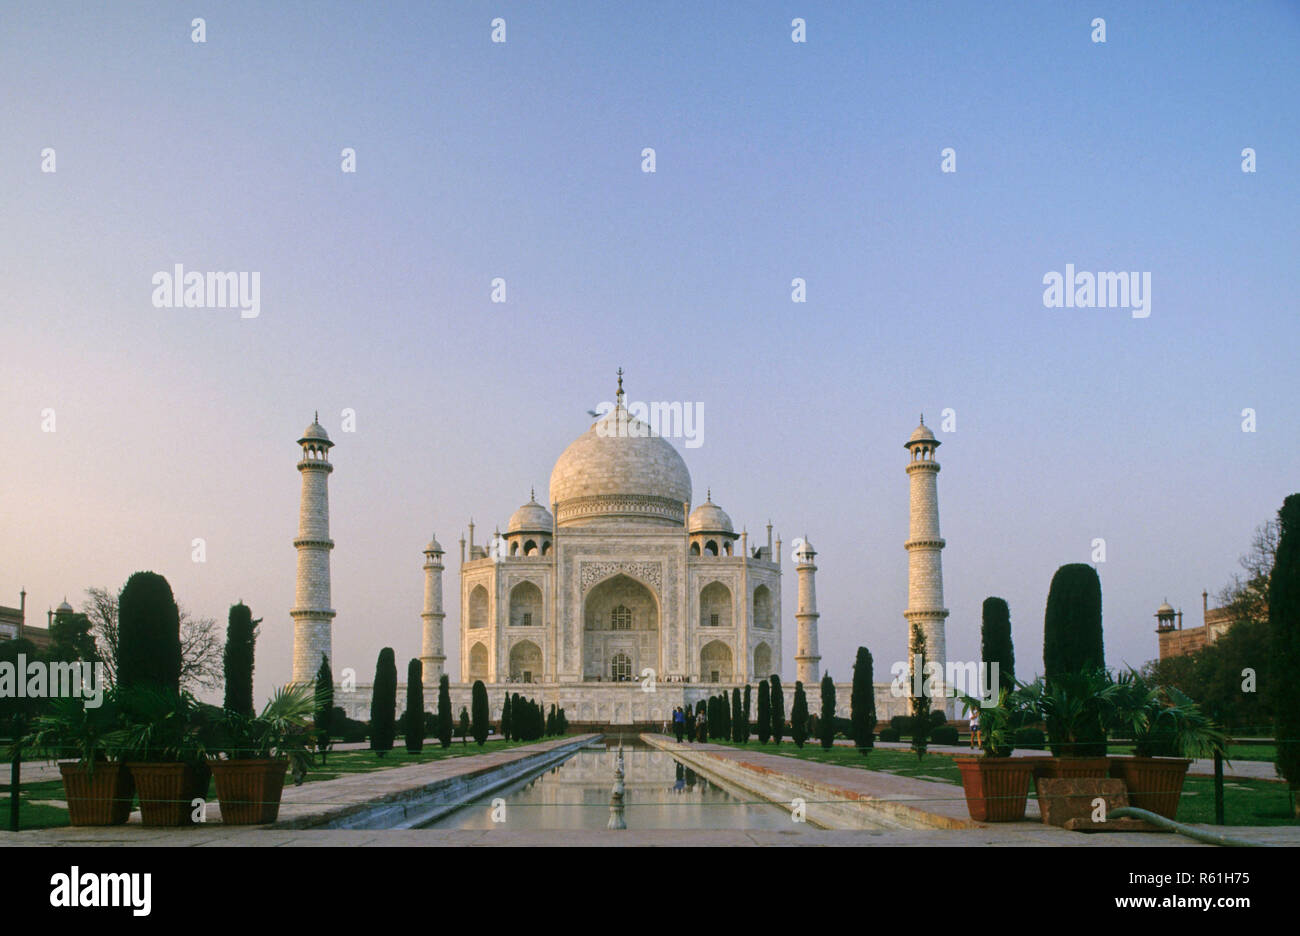 Taj Mahal (1631-1653 A .D.), Agra, Uttar Pradesh, India Stock Photo